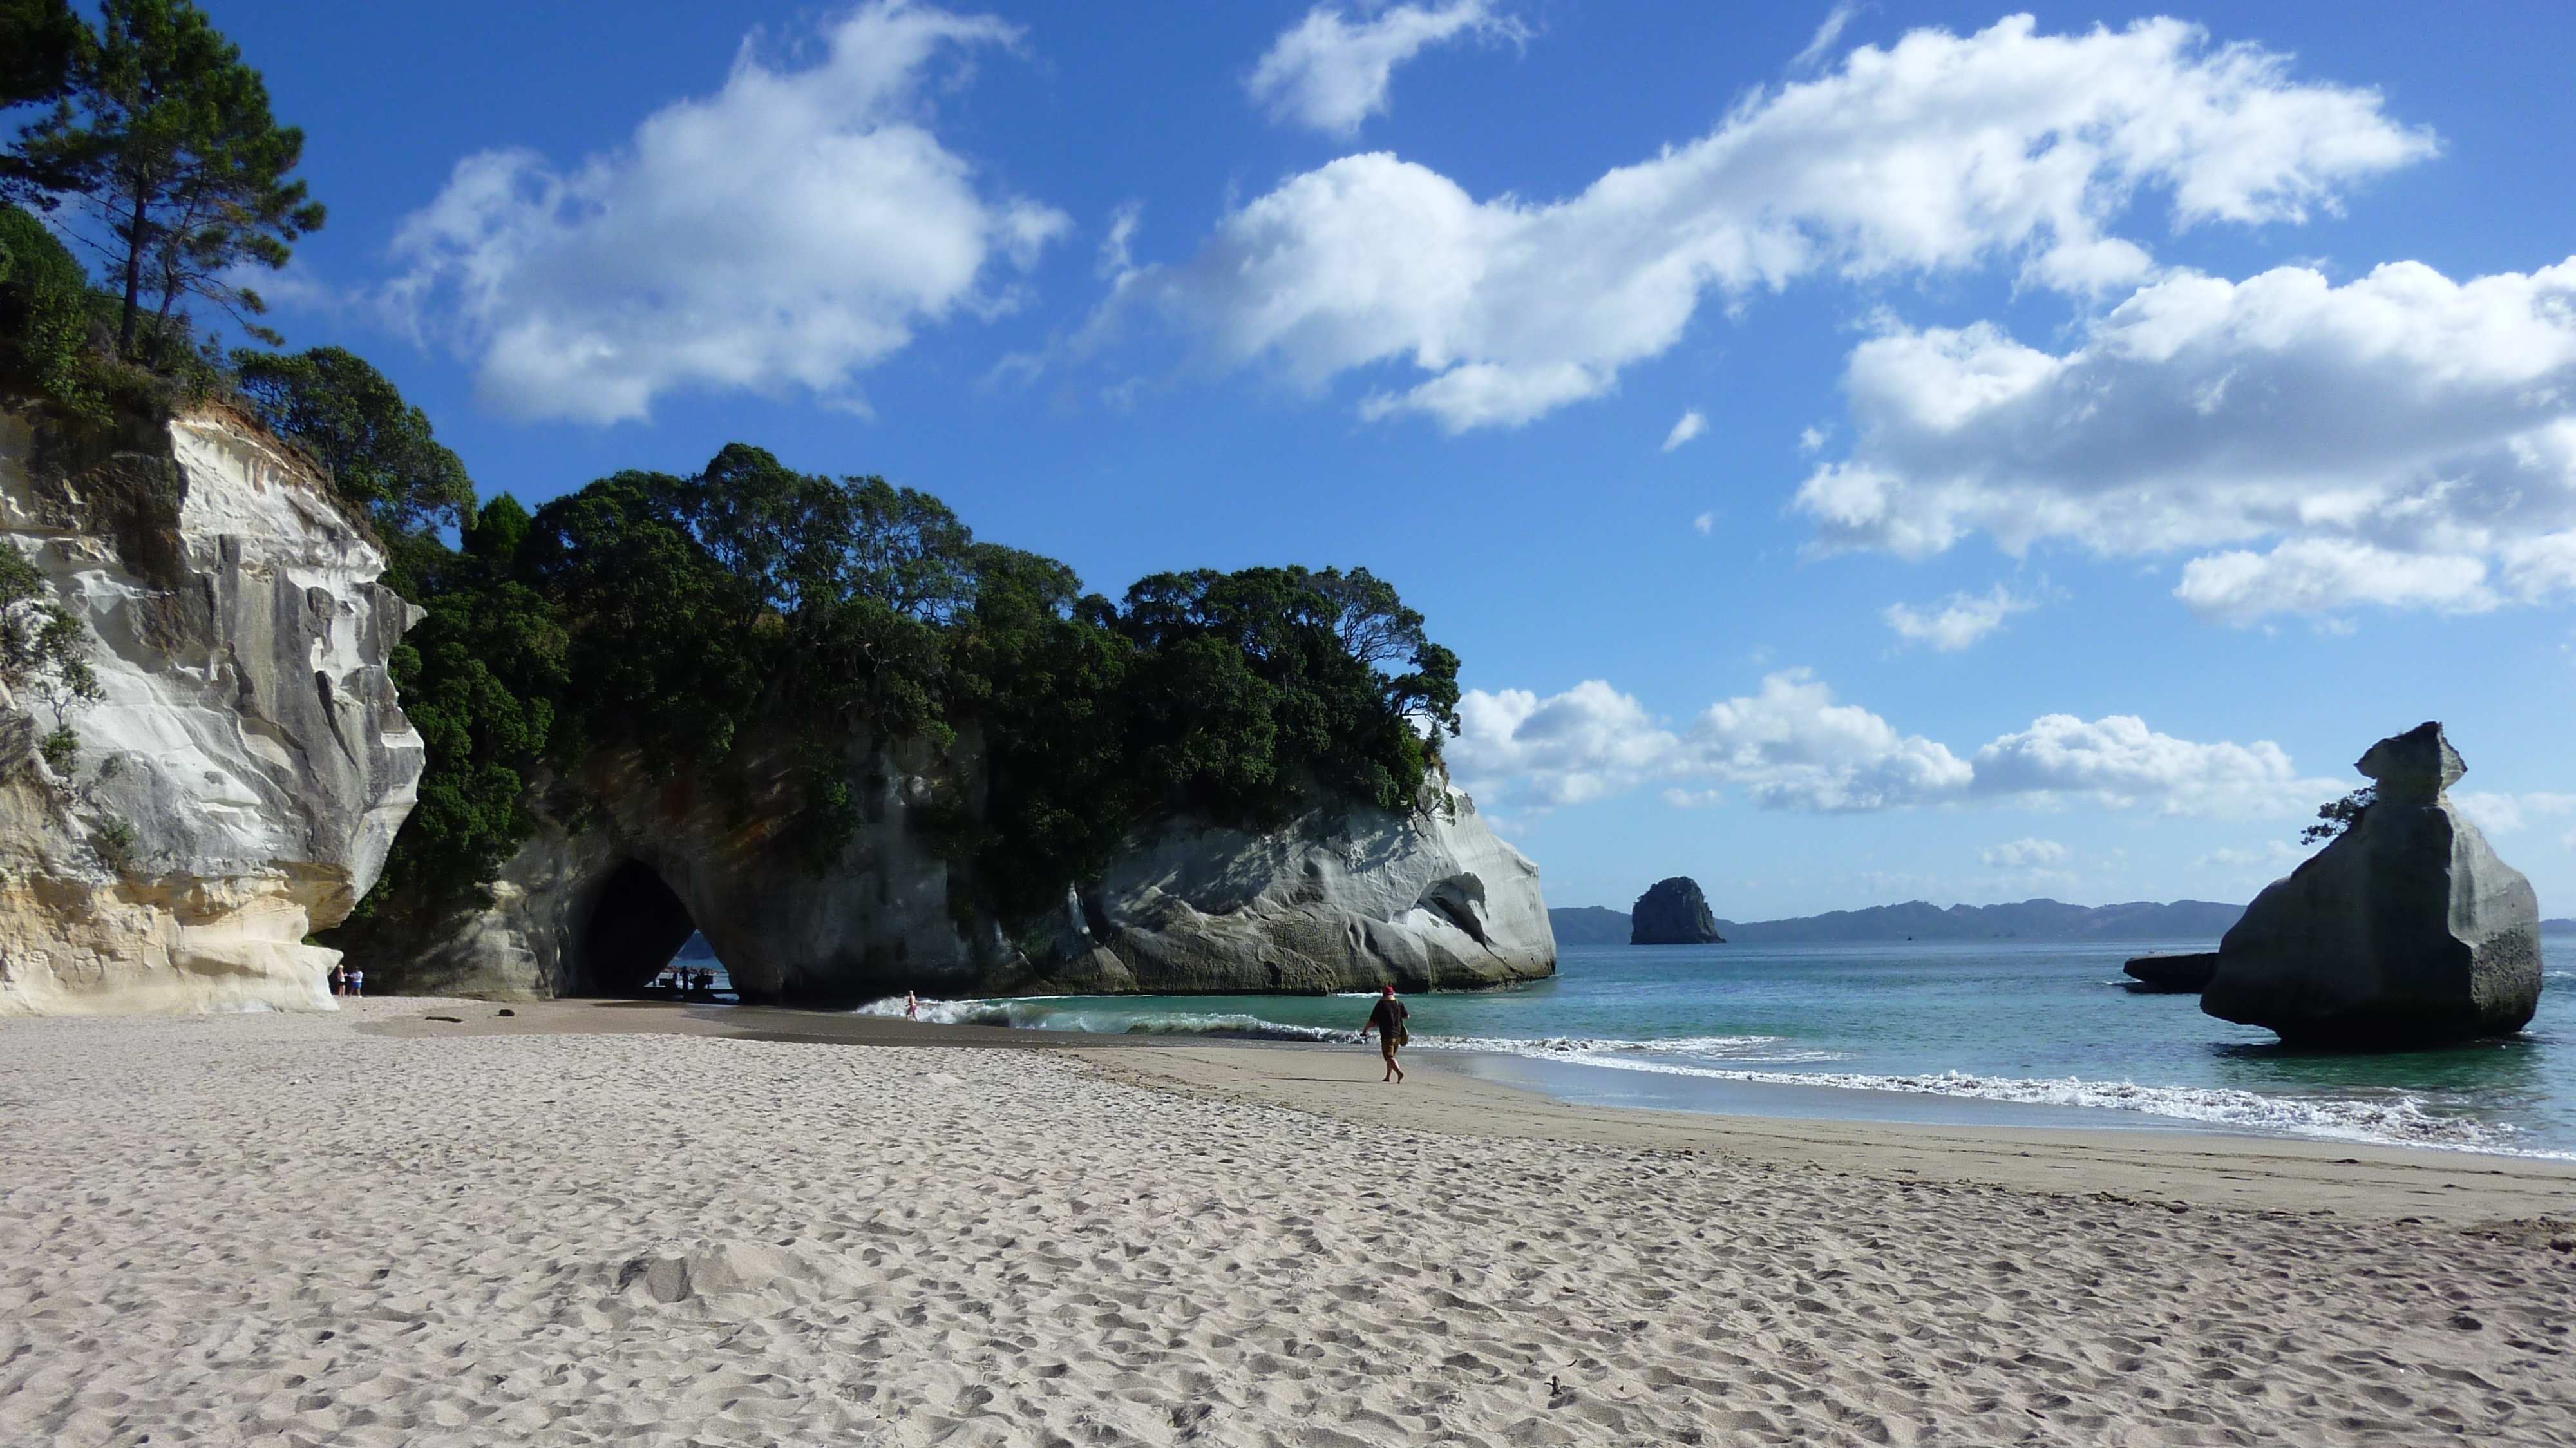 Description Cathedral cove Beach JPGCathedral Cove